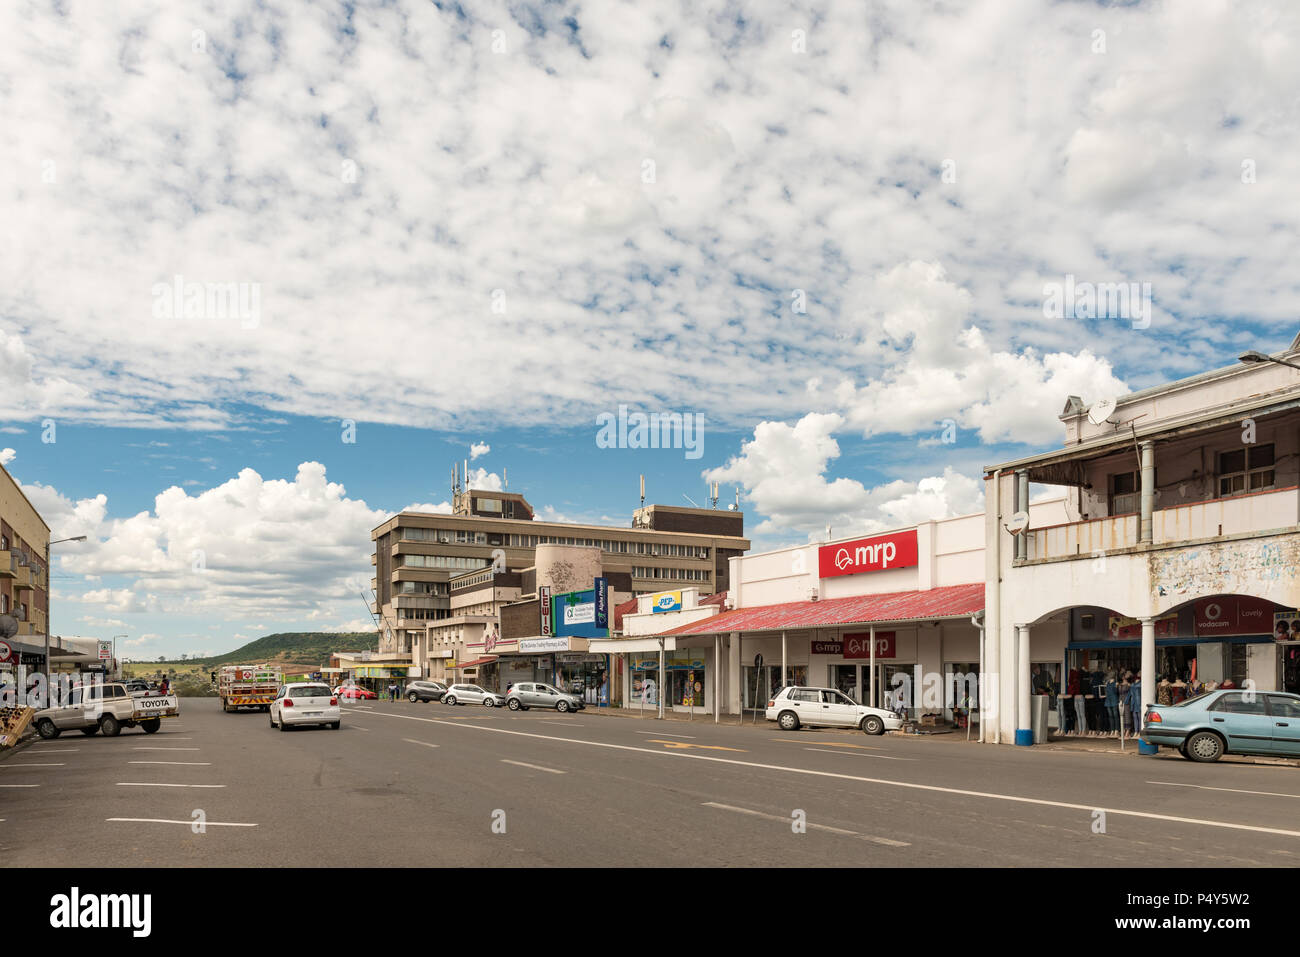 DUNDEE, SOUTH AFRICA - MARCH 21, 2018: A street scene with businesses and vehicles in Dundee in the Kwazulu-Natal Province - Stock Image